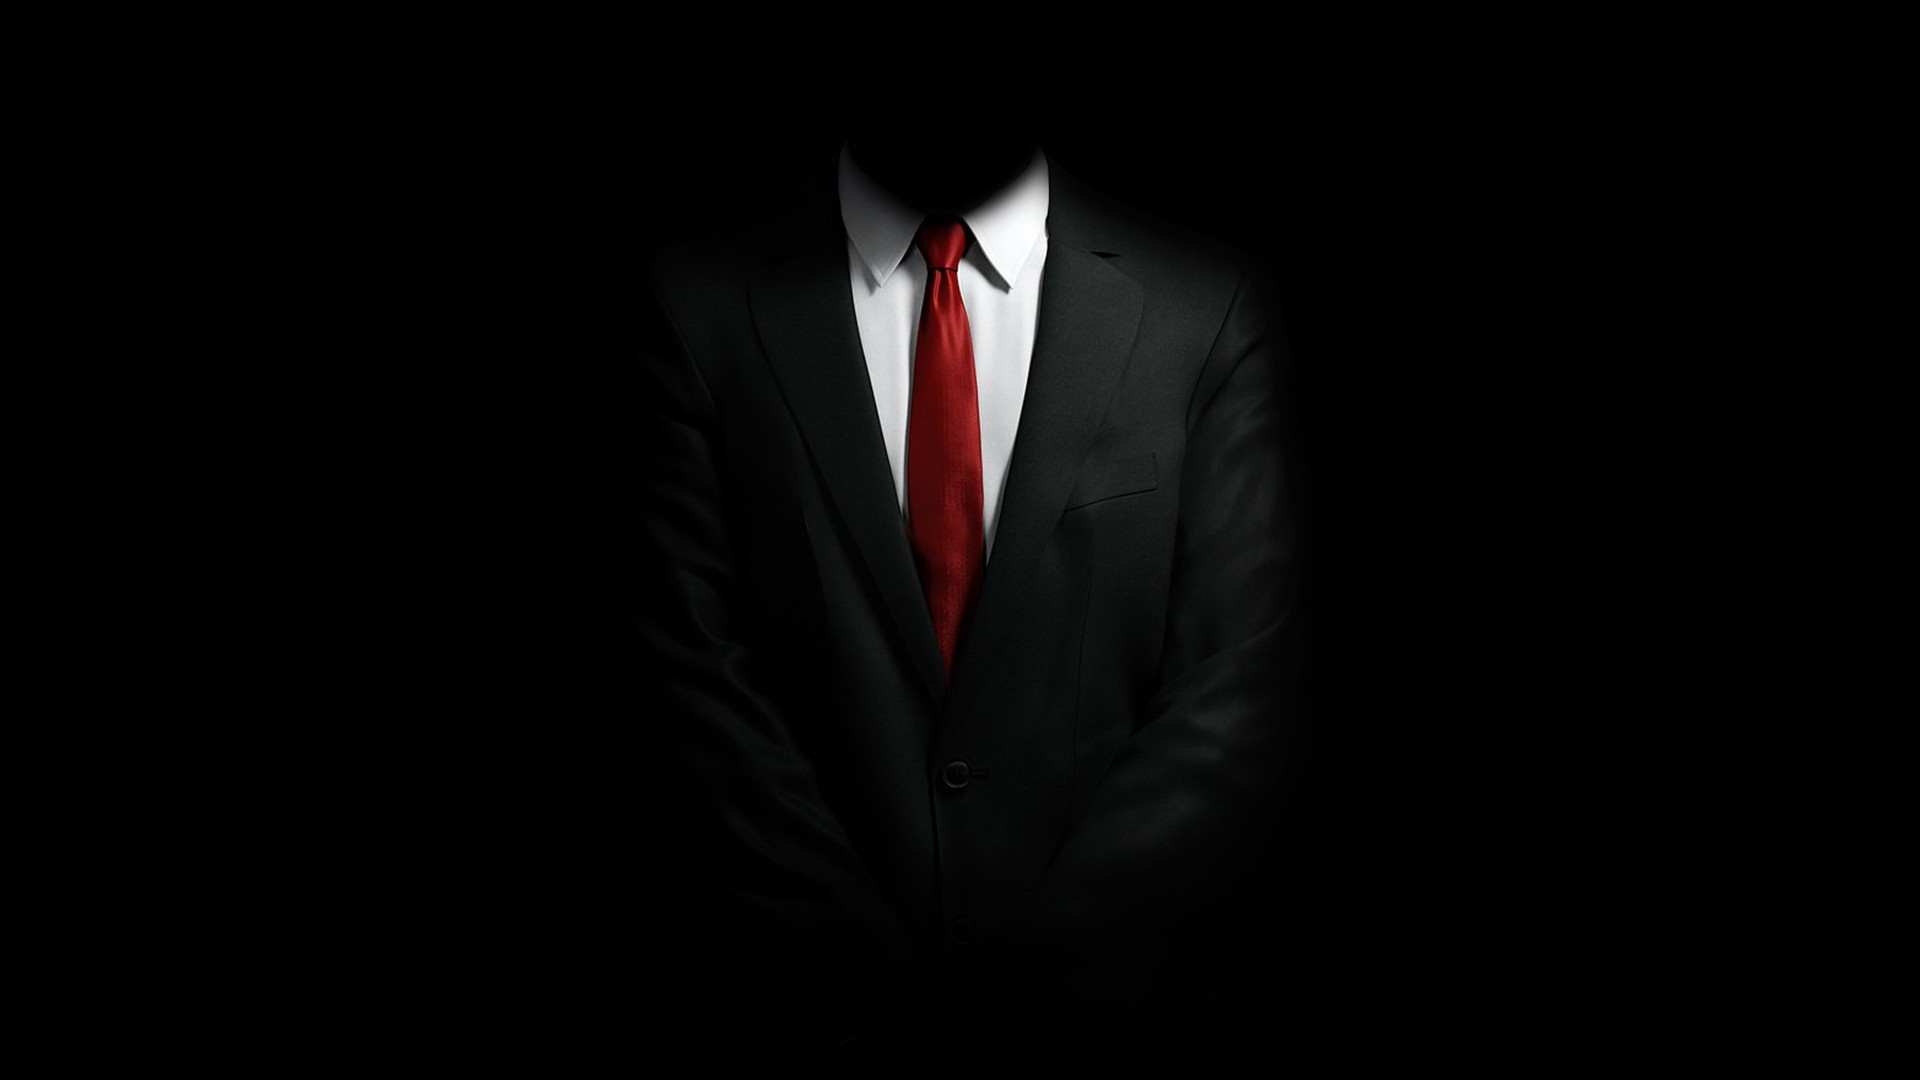 Download Mystery Man Wallpaper Wallpapers 1920x1080